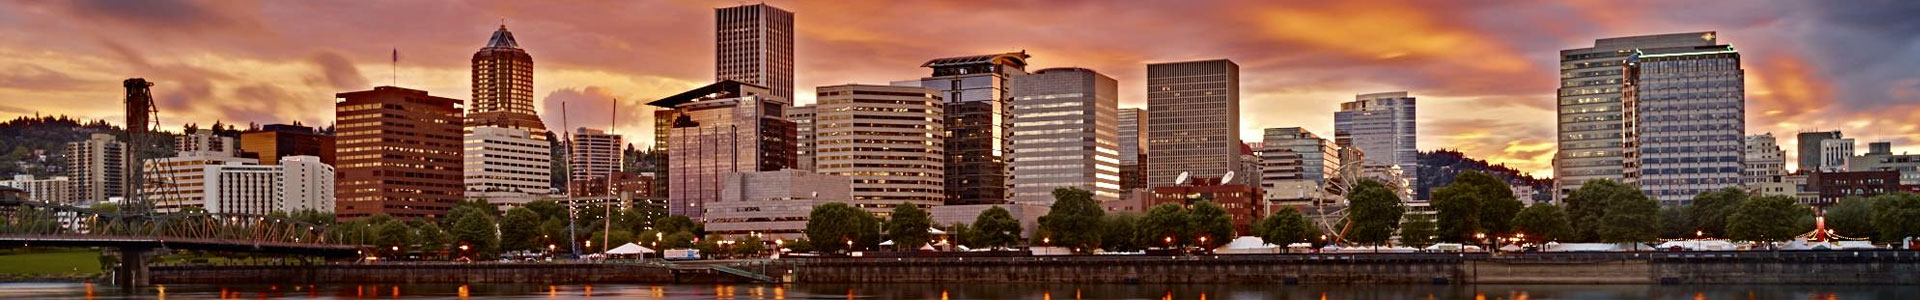 Downtown Portland Oregon cityscape at sunset